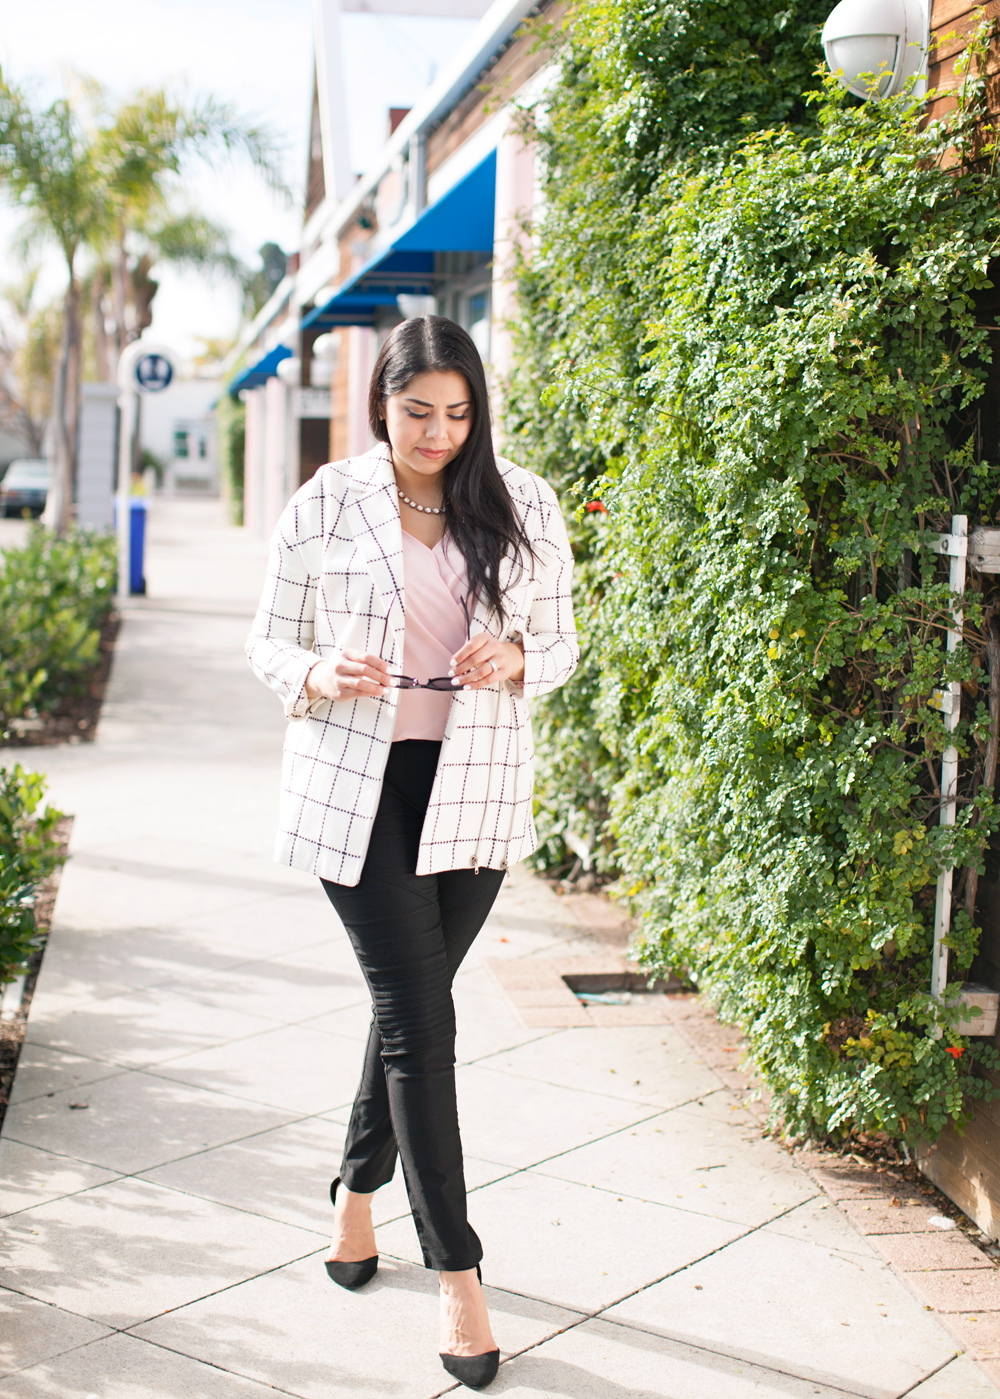 Modern Professional Attire, San Diego Winter Fashion, San Diego Fashion Blogger, Miss Match San Diego